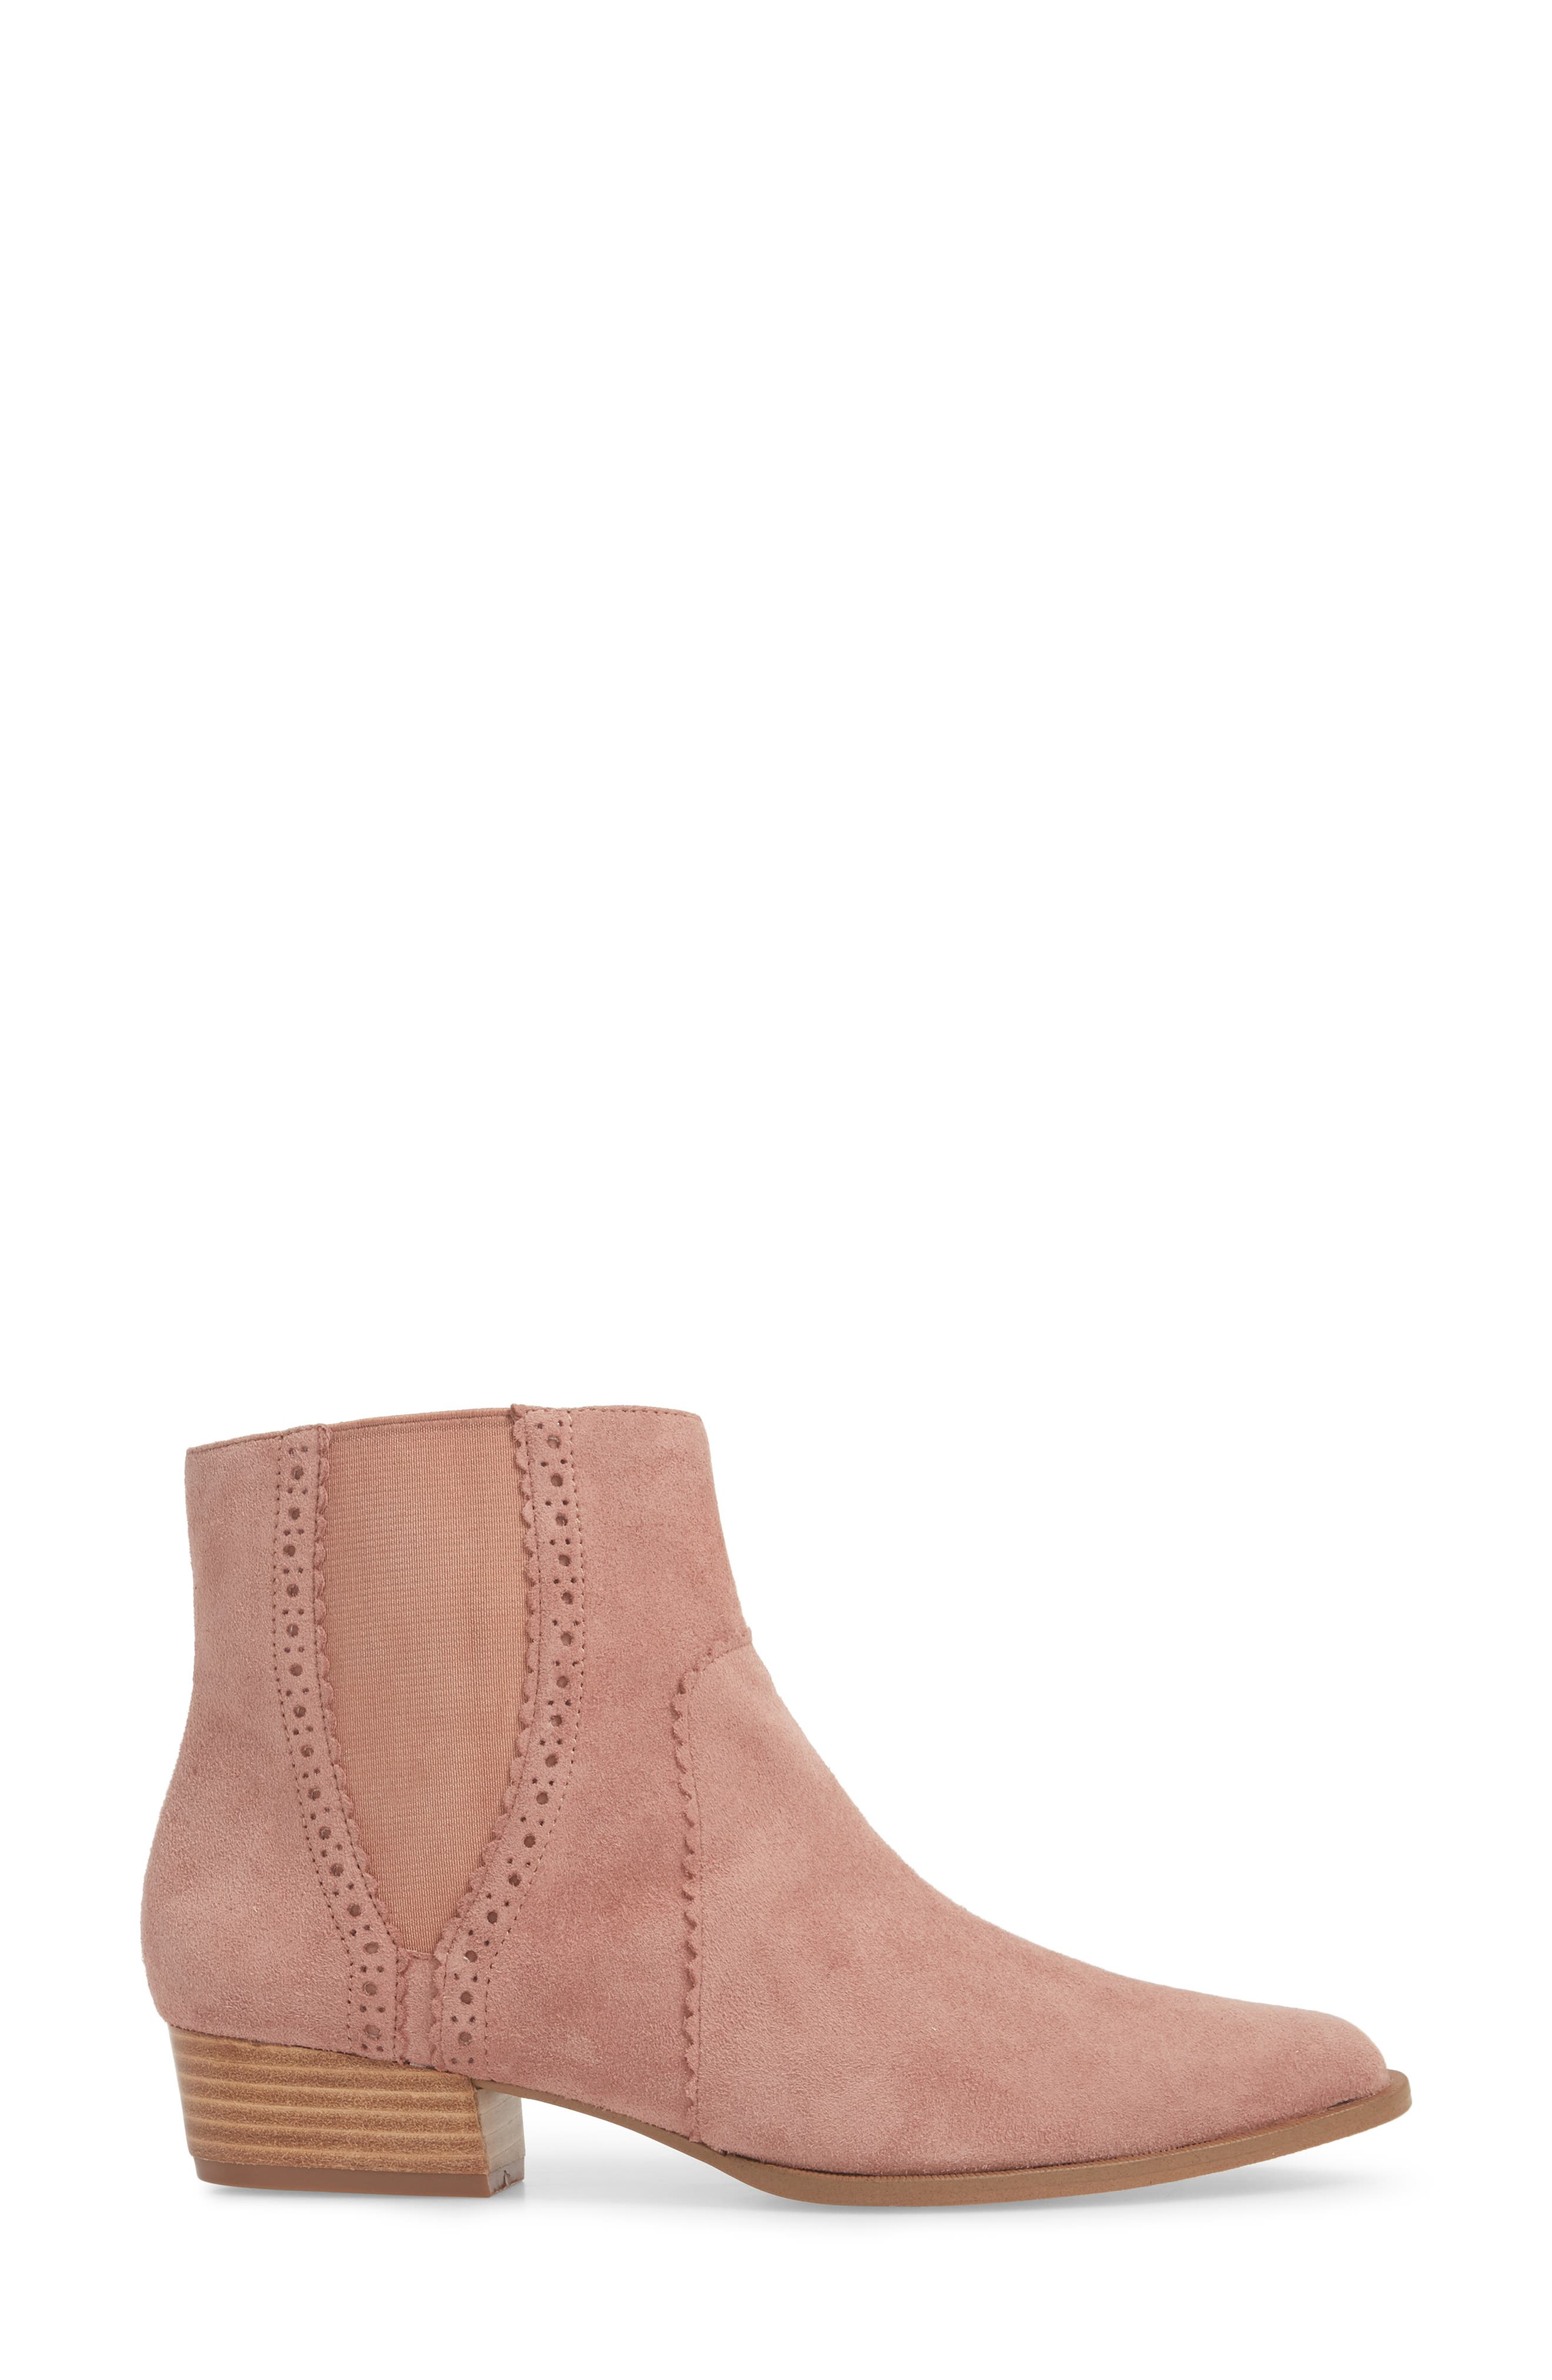 Mica Chelsea Bootie,                             Alternate thumbnail 3, color,                             ROSE SUEDE